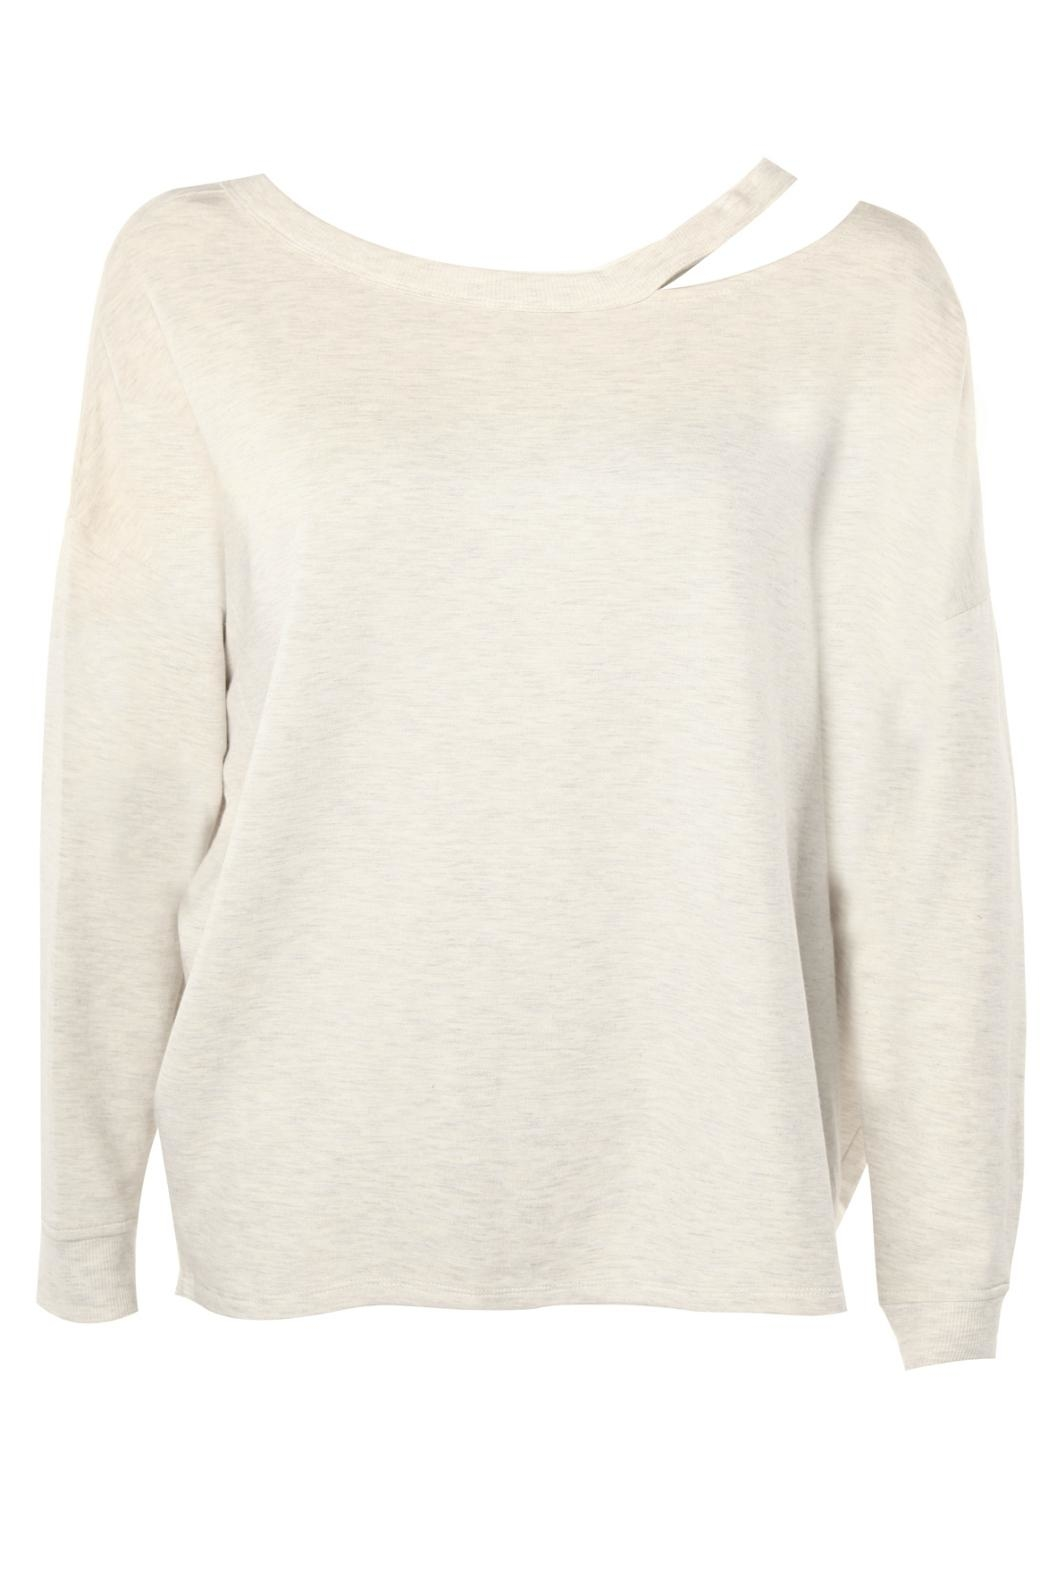 Dex Shoulder Accented Sweatshirt - Front Cropped Image